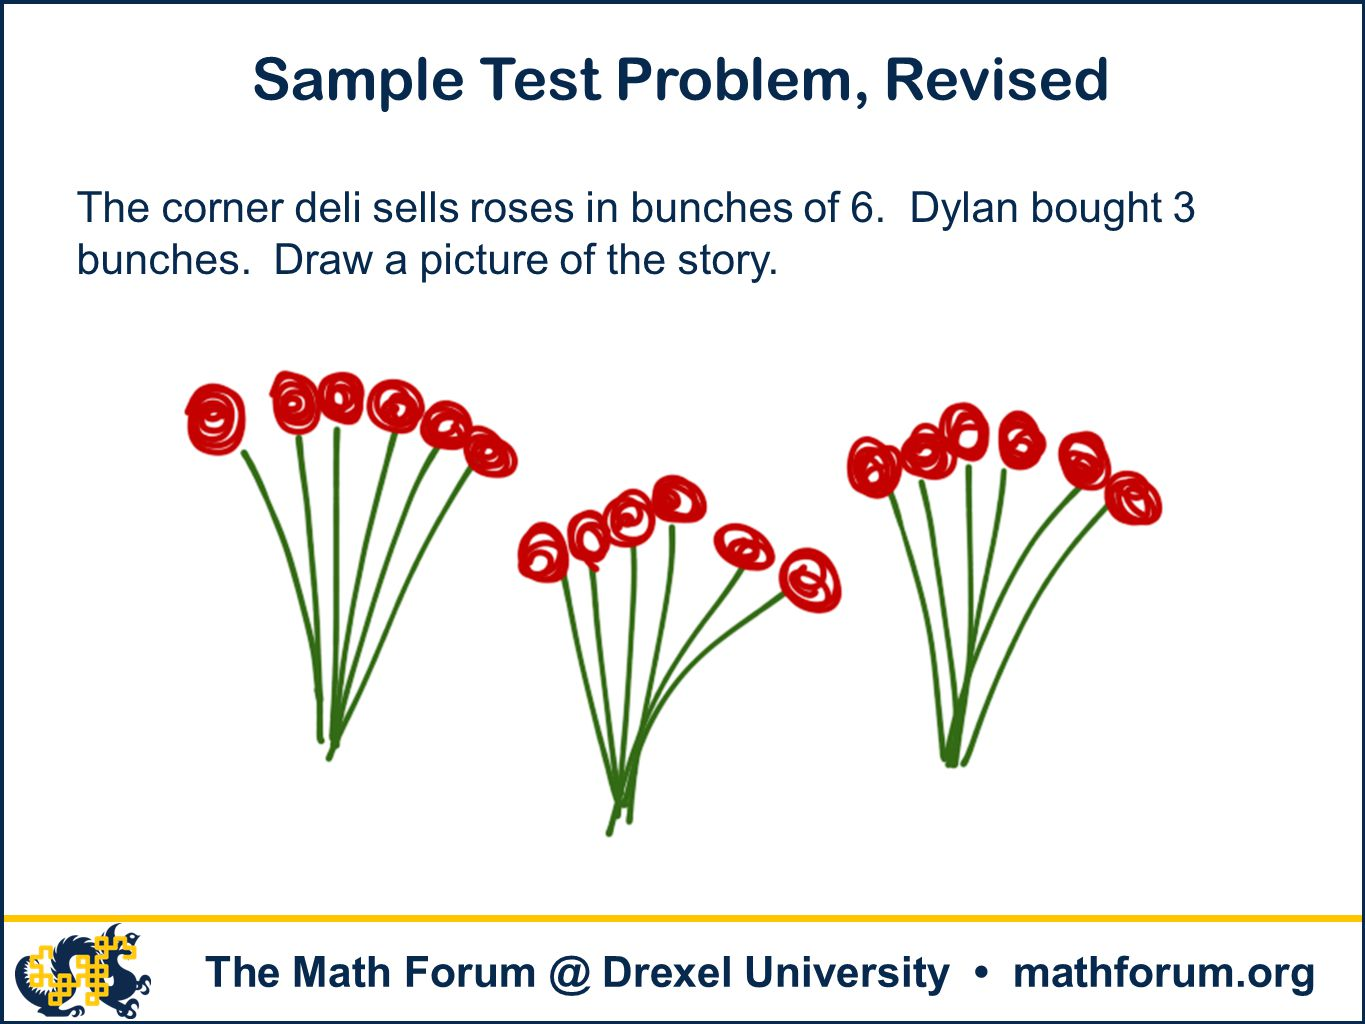 Sample Test Problem, Revised